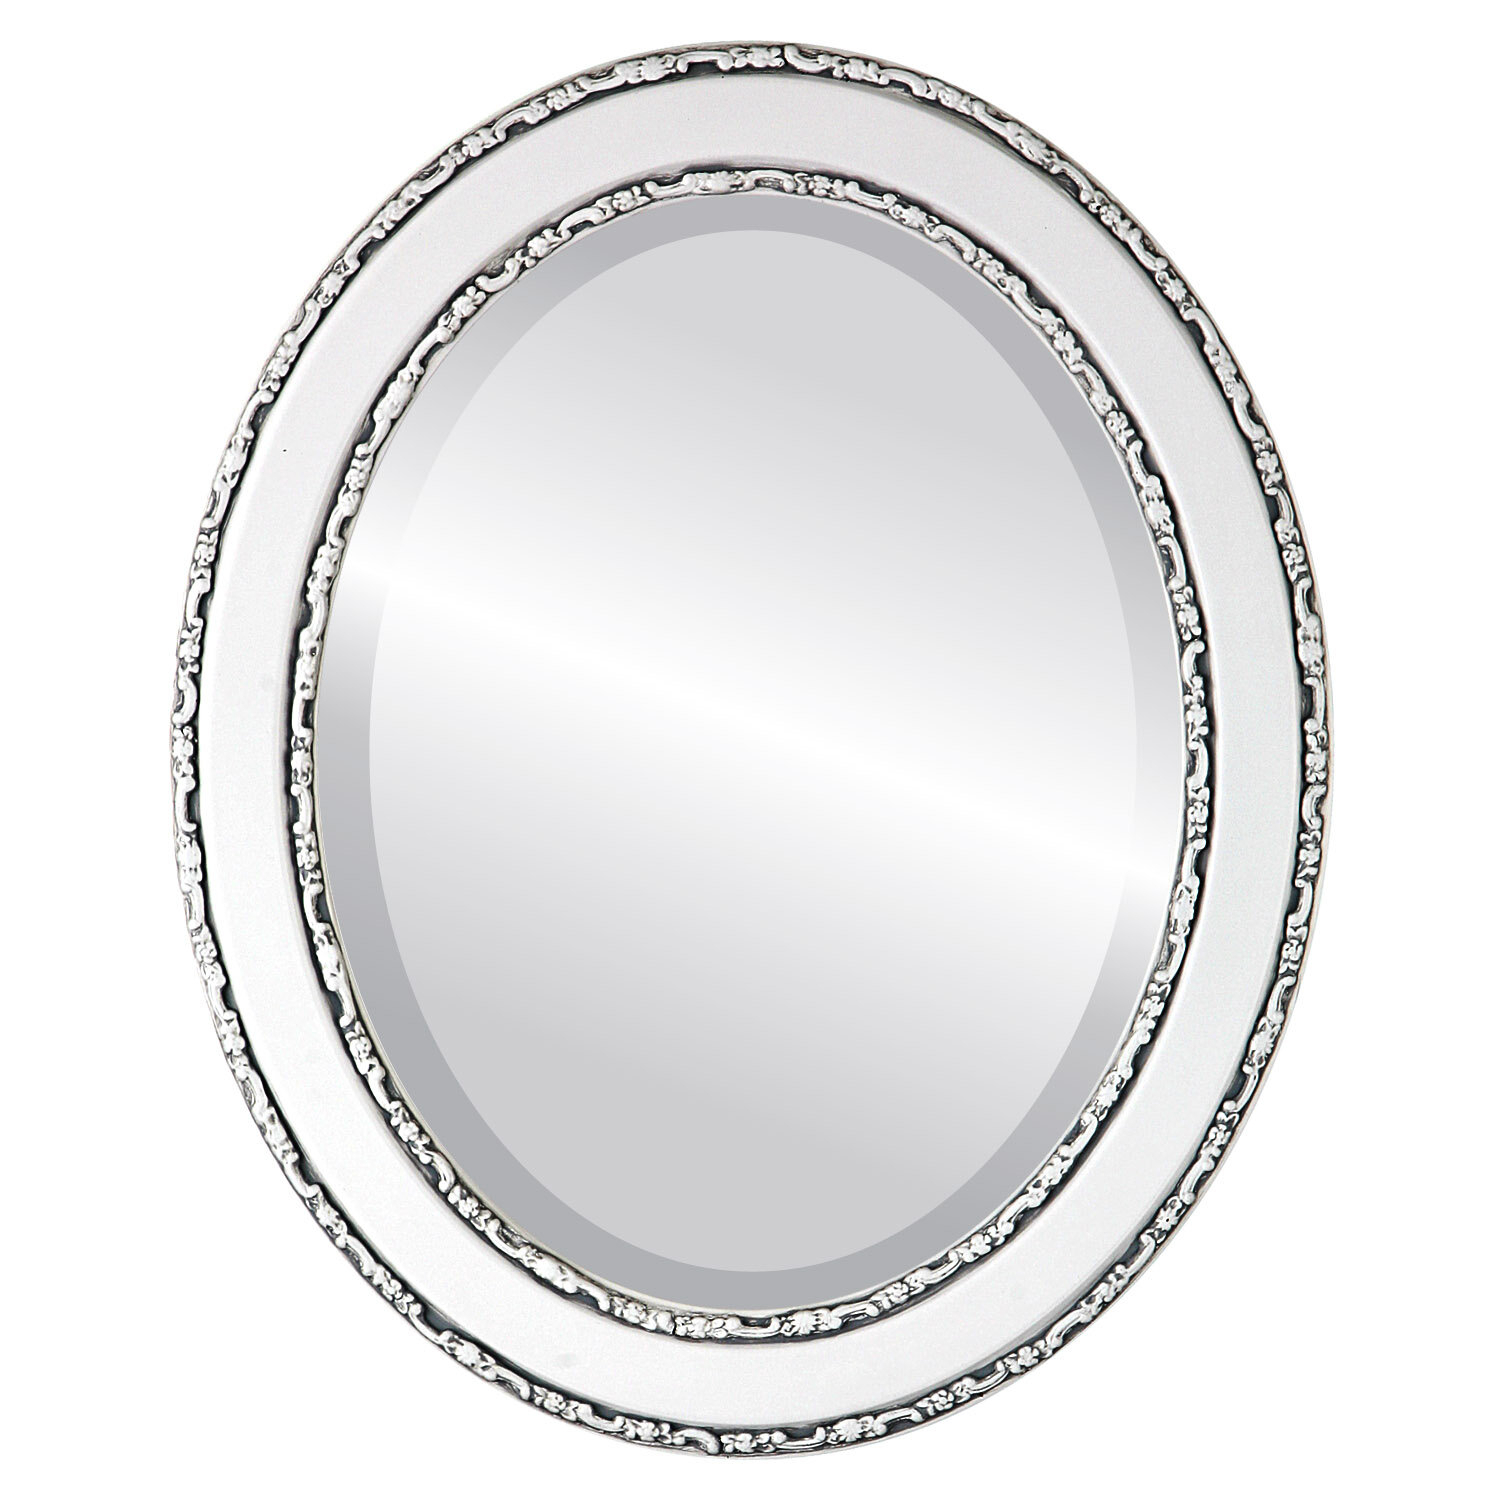 Minerva Oval Traditional Beveled Accent Mirror pertaining to Minerva Accent Mirrors (Image 23 of 30)